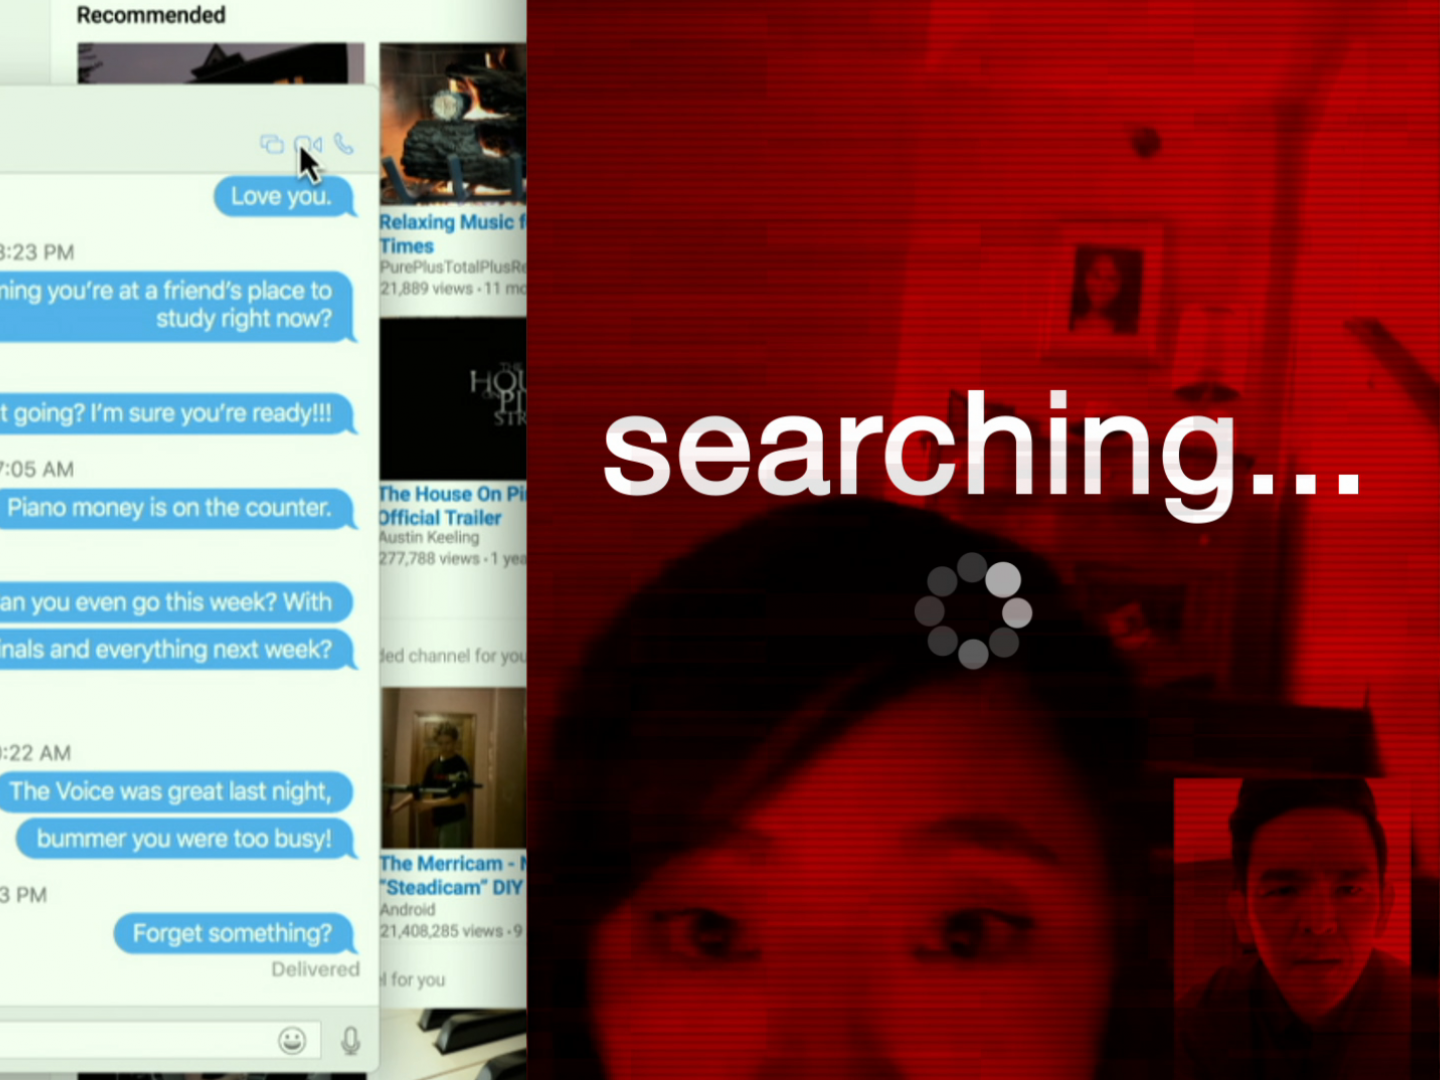 SEARCHING - TV